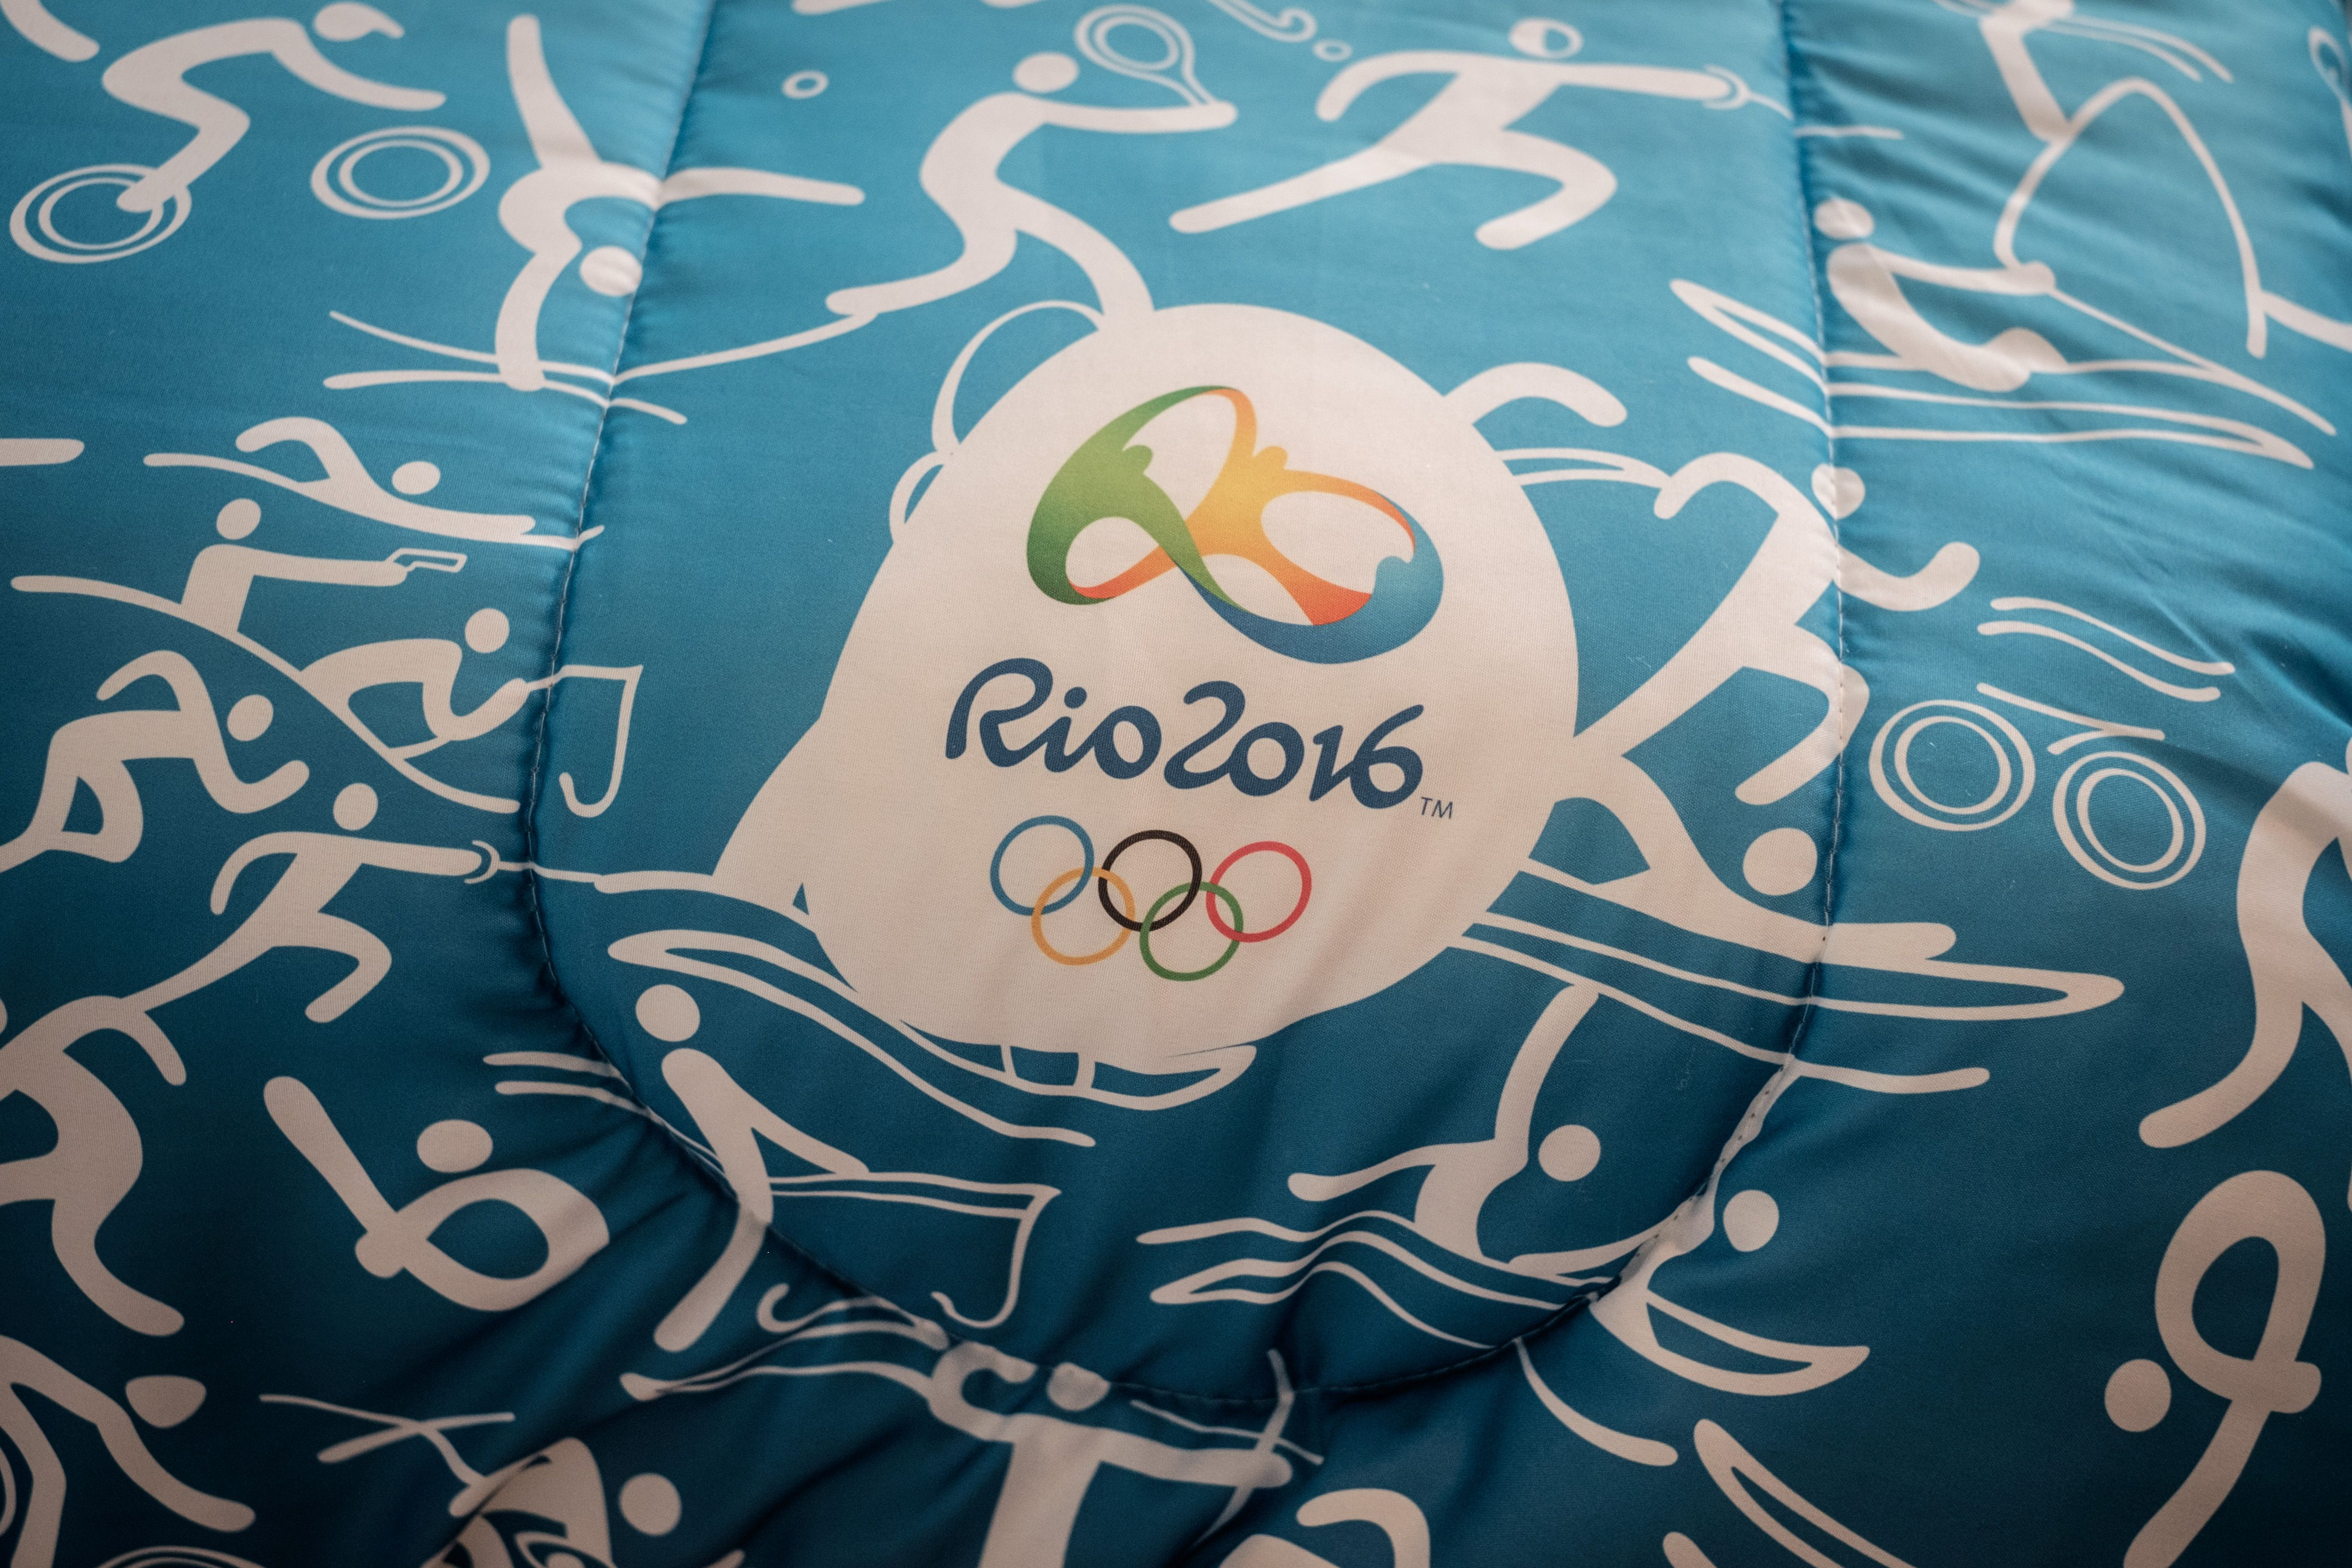 What does the rio olympic logo mean the 2016 design represents yasuyoshi chibaafpgetty images buycottarizona